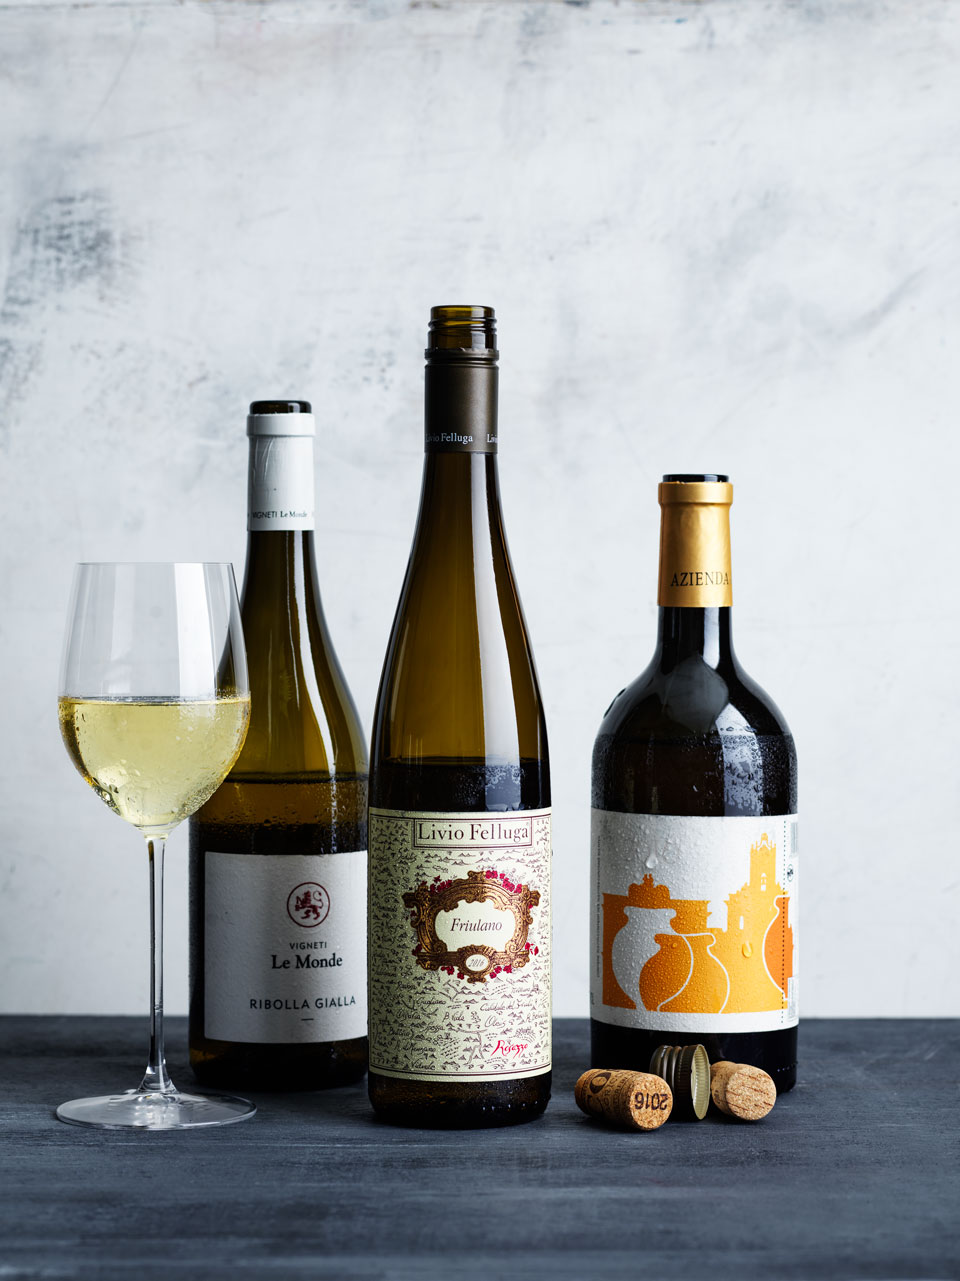 There's a variety for any occasion in the wide and diverse Italian whites.